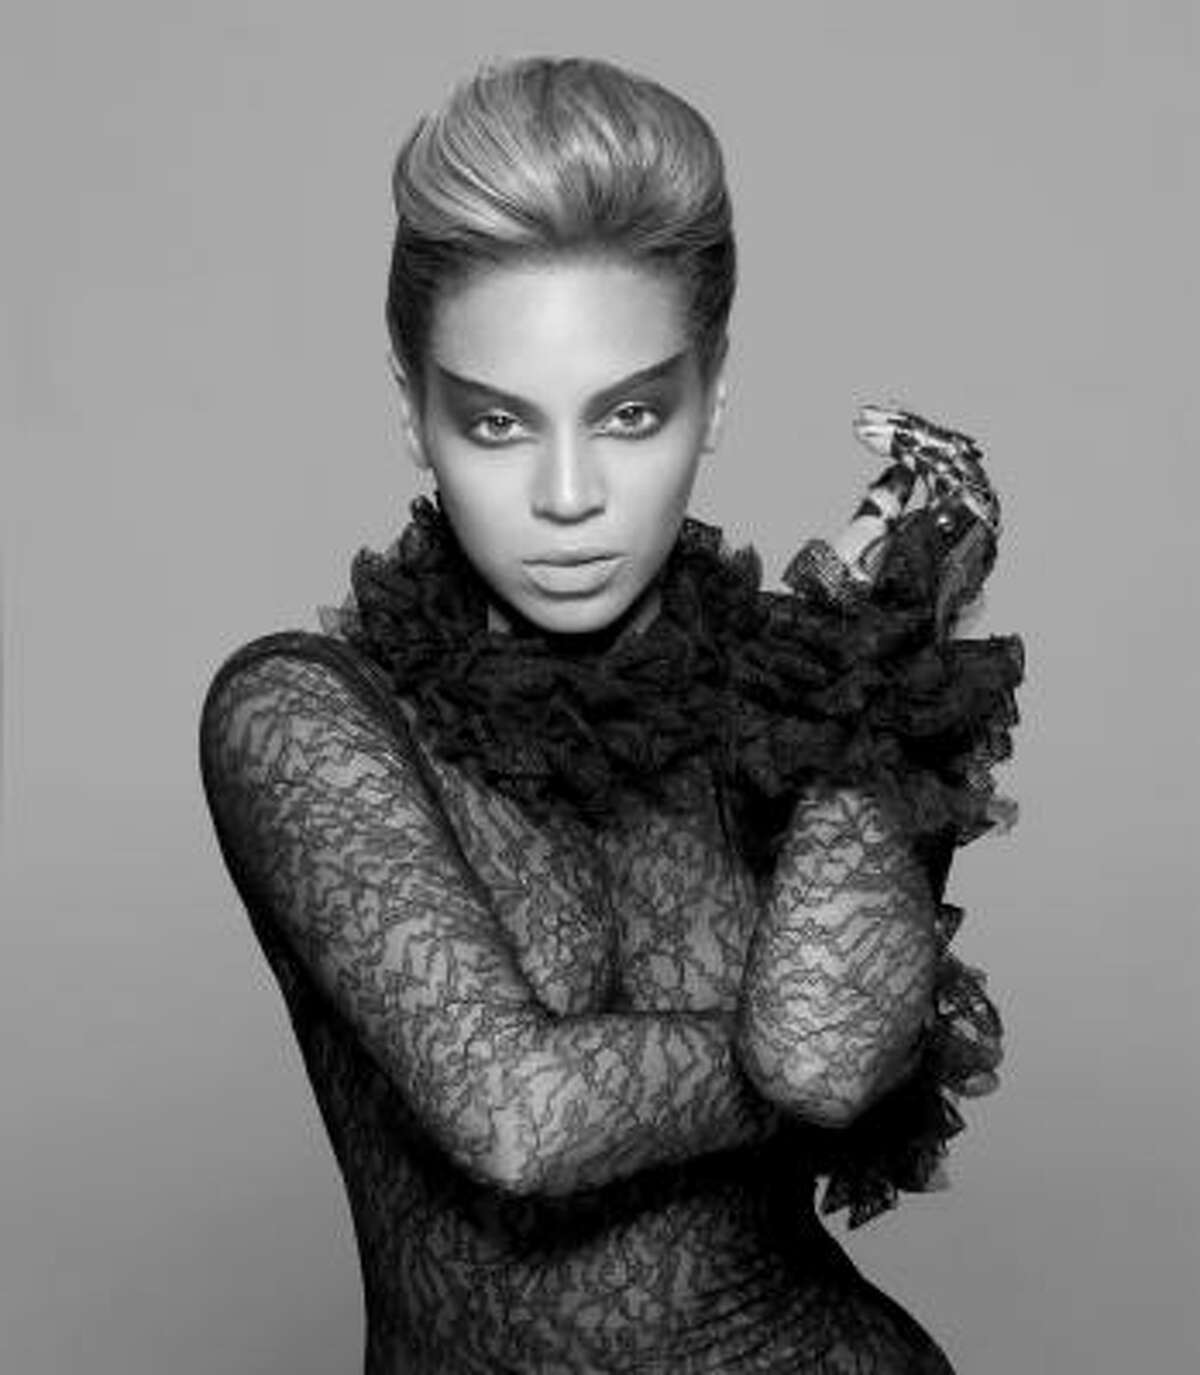 Sasha Fierce: In case you don't know that she's Beyoncé's edgy and uninhibited counterpart, she wears a glove to make it clear. Rrrarr.